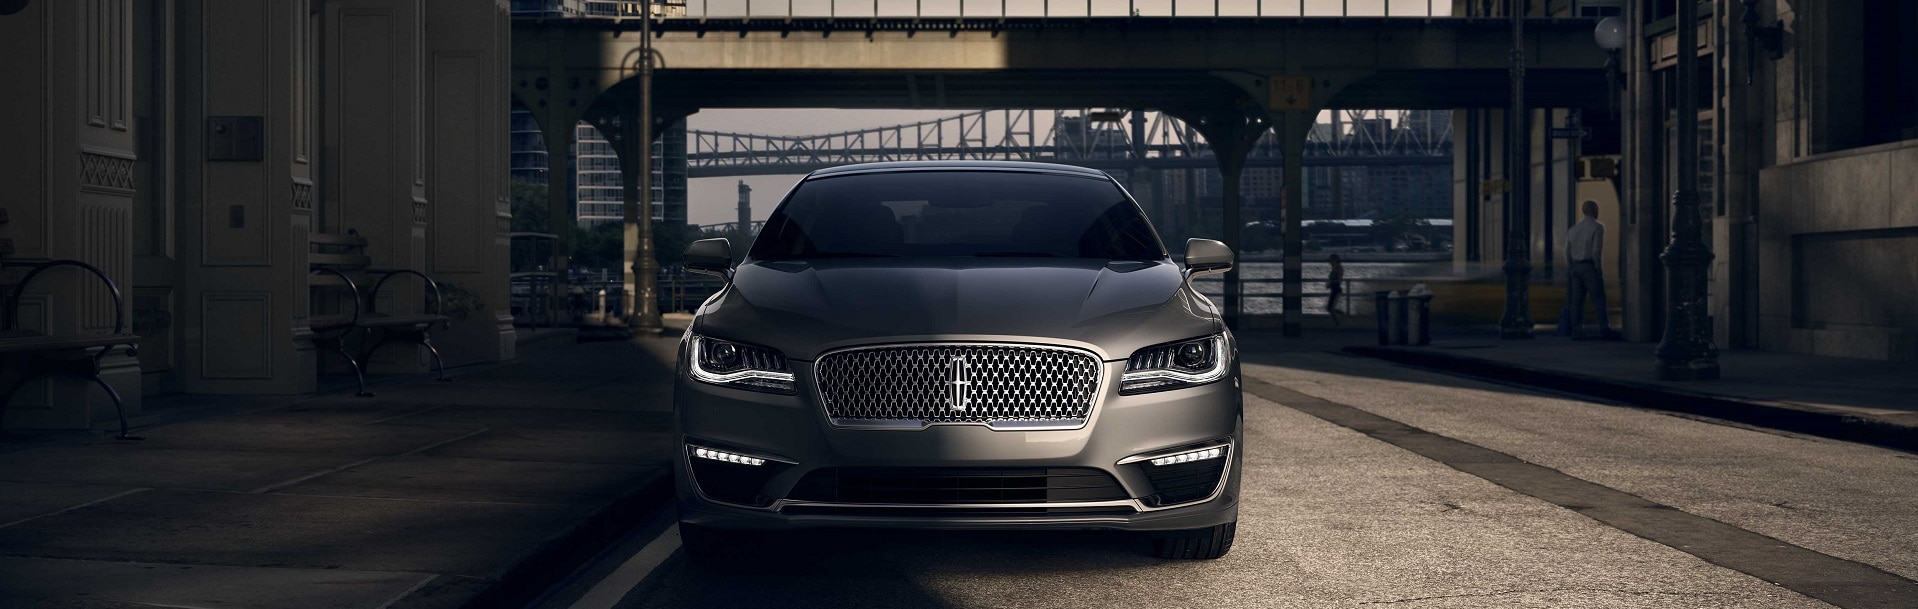 2017 Lincoln MKZ Mayfield Heights, OH